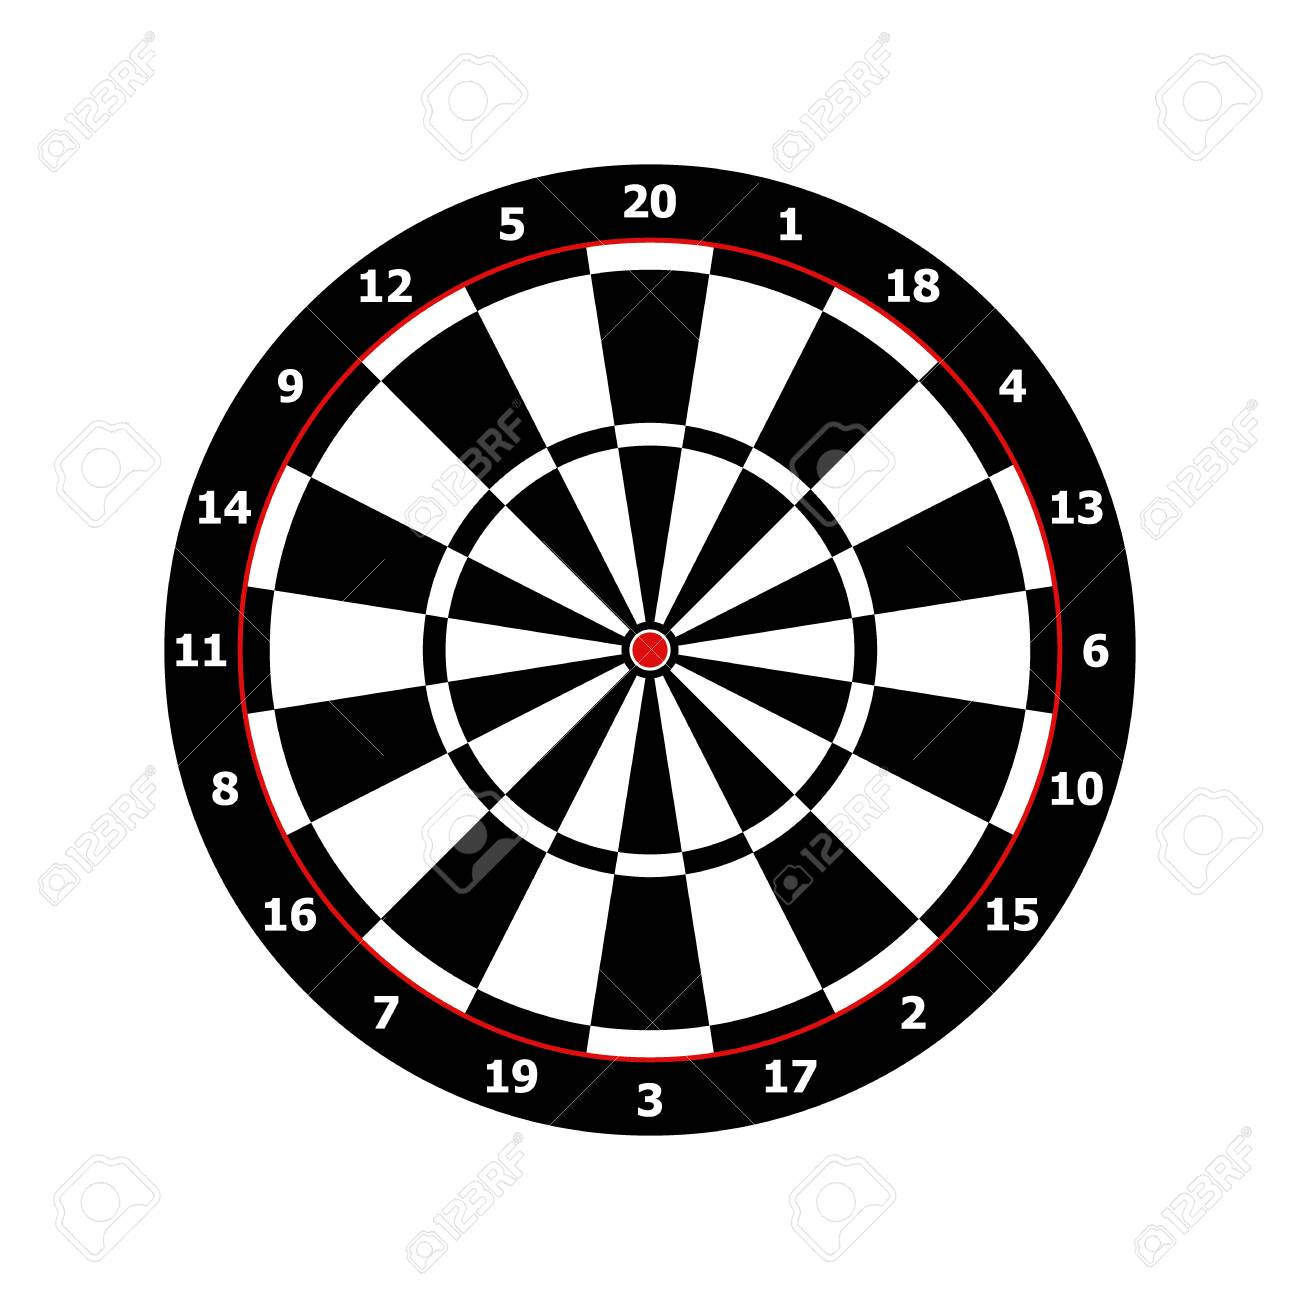 classic darts board game template in black and white vector